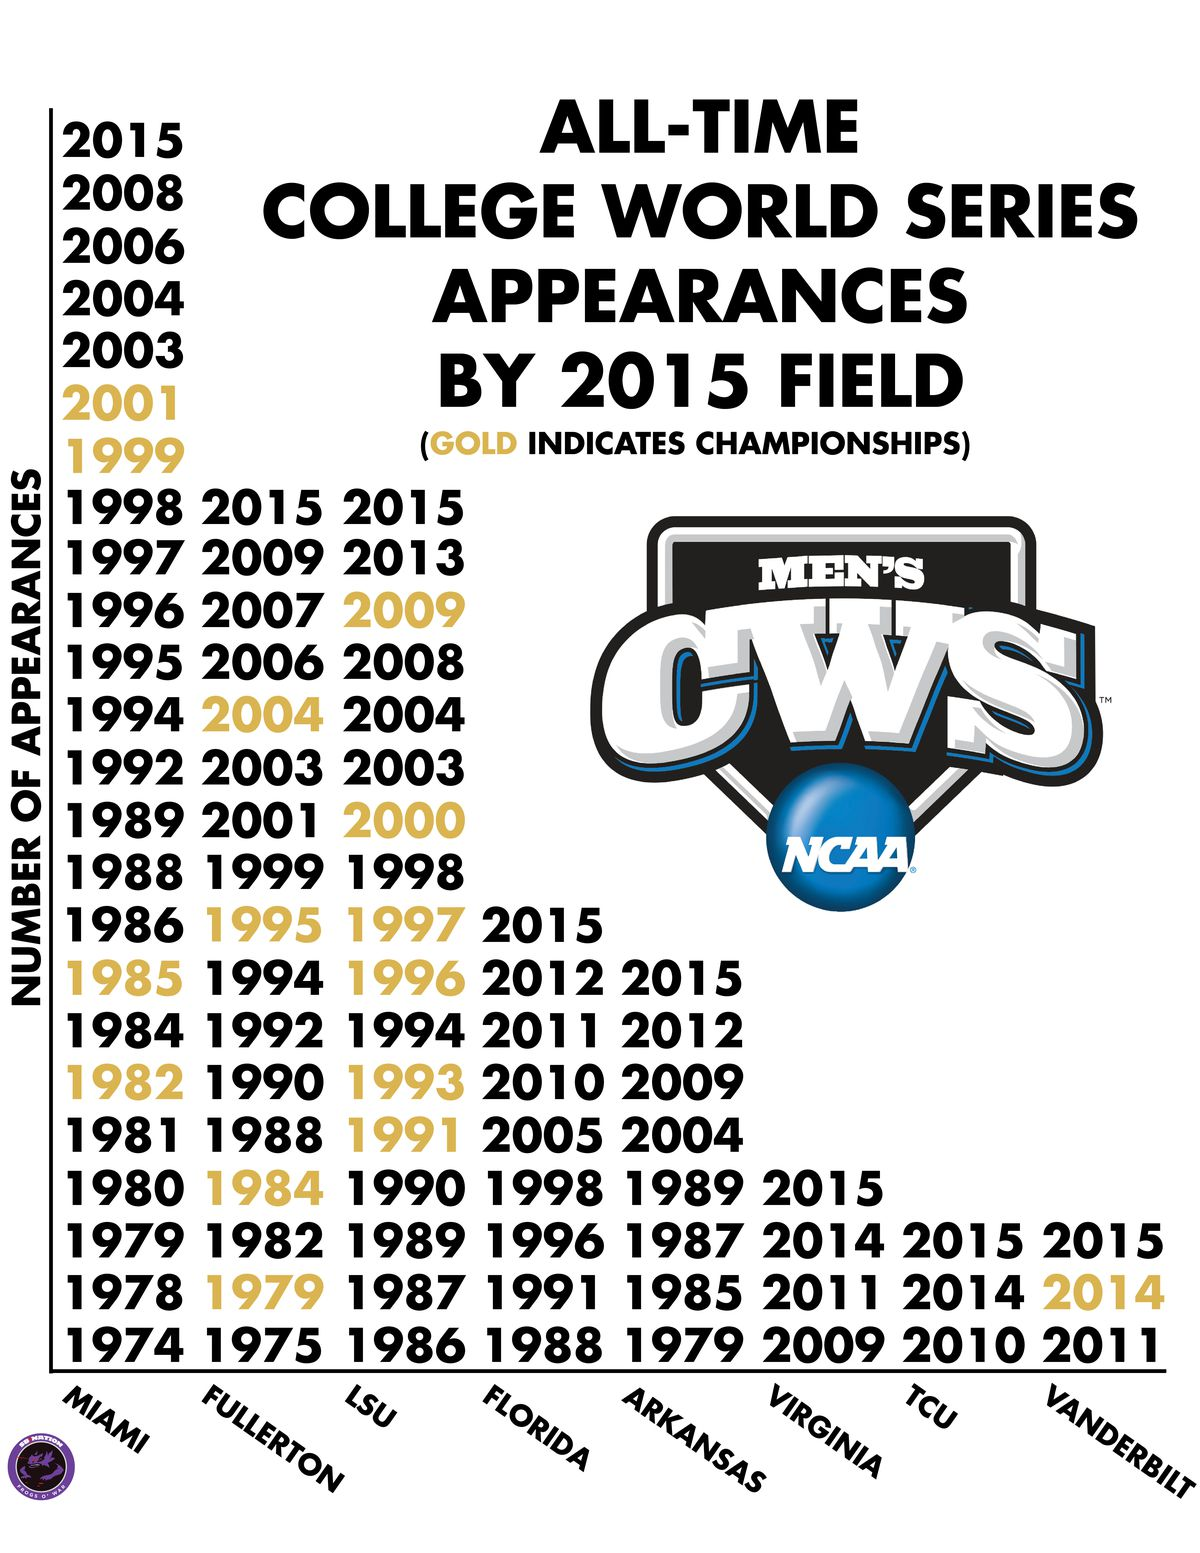 CWS History Infographic